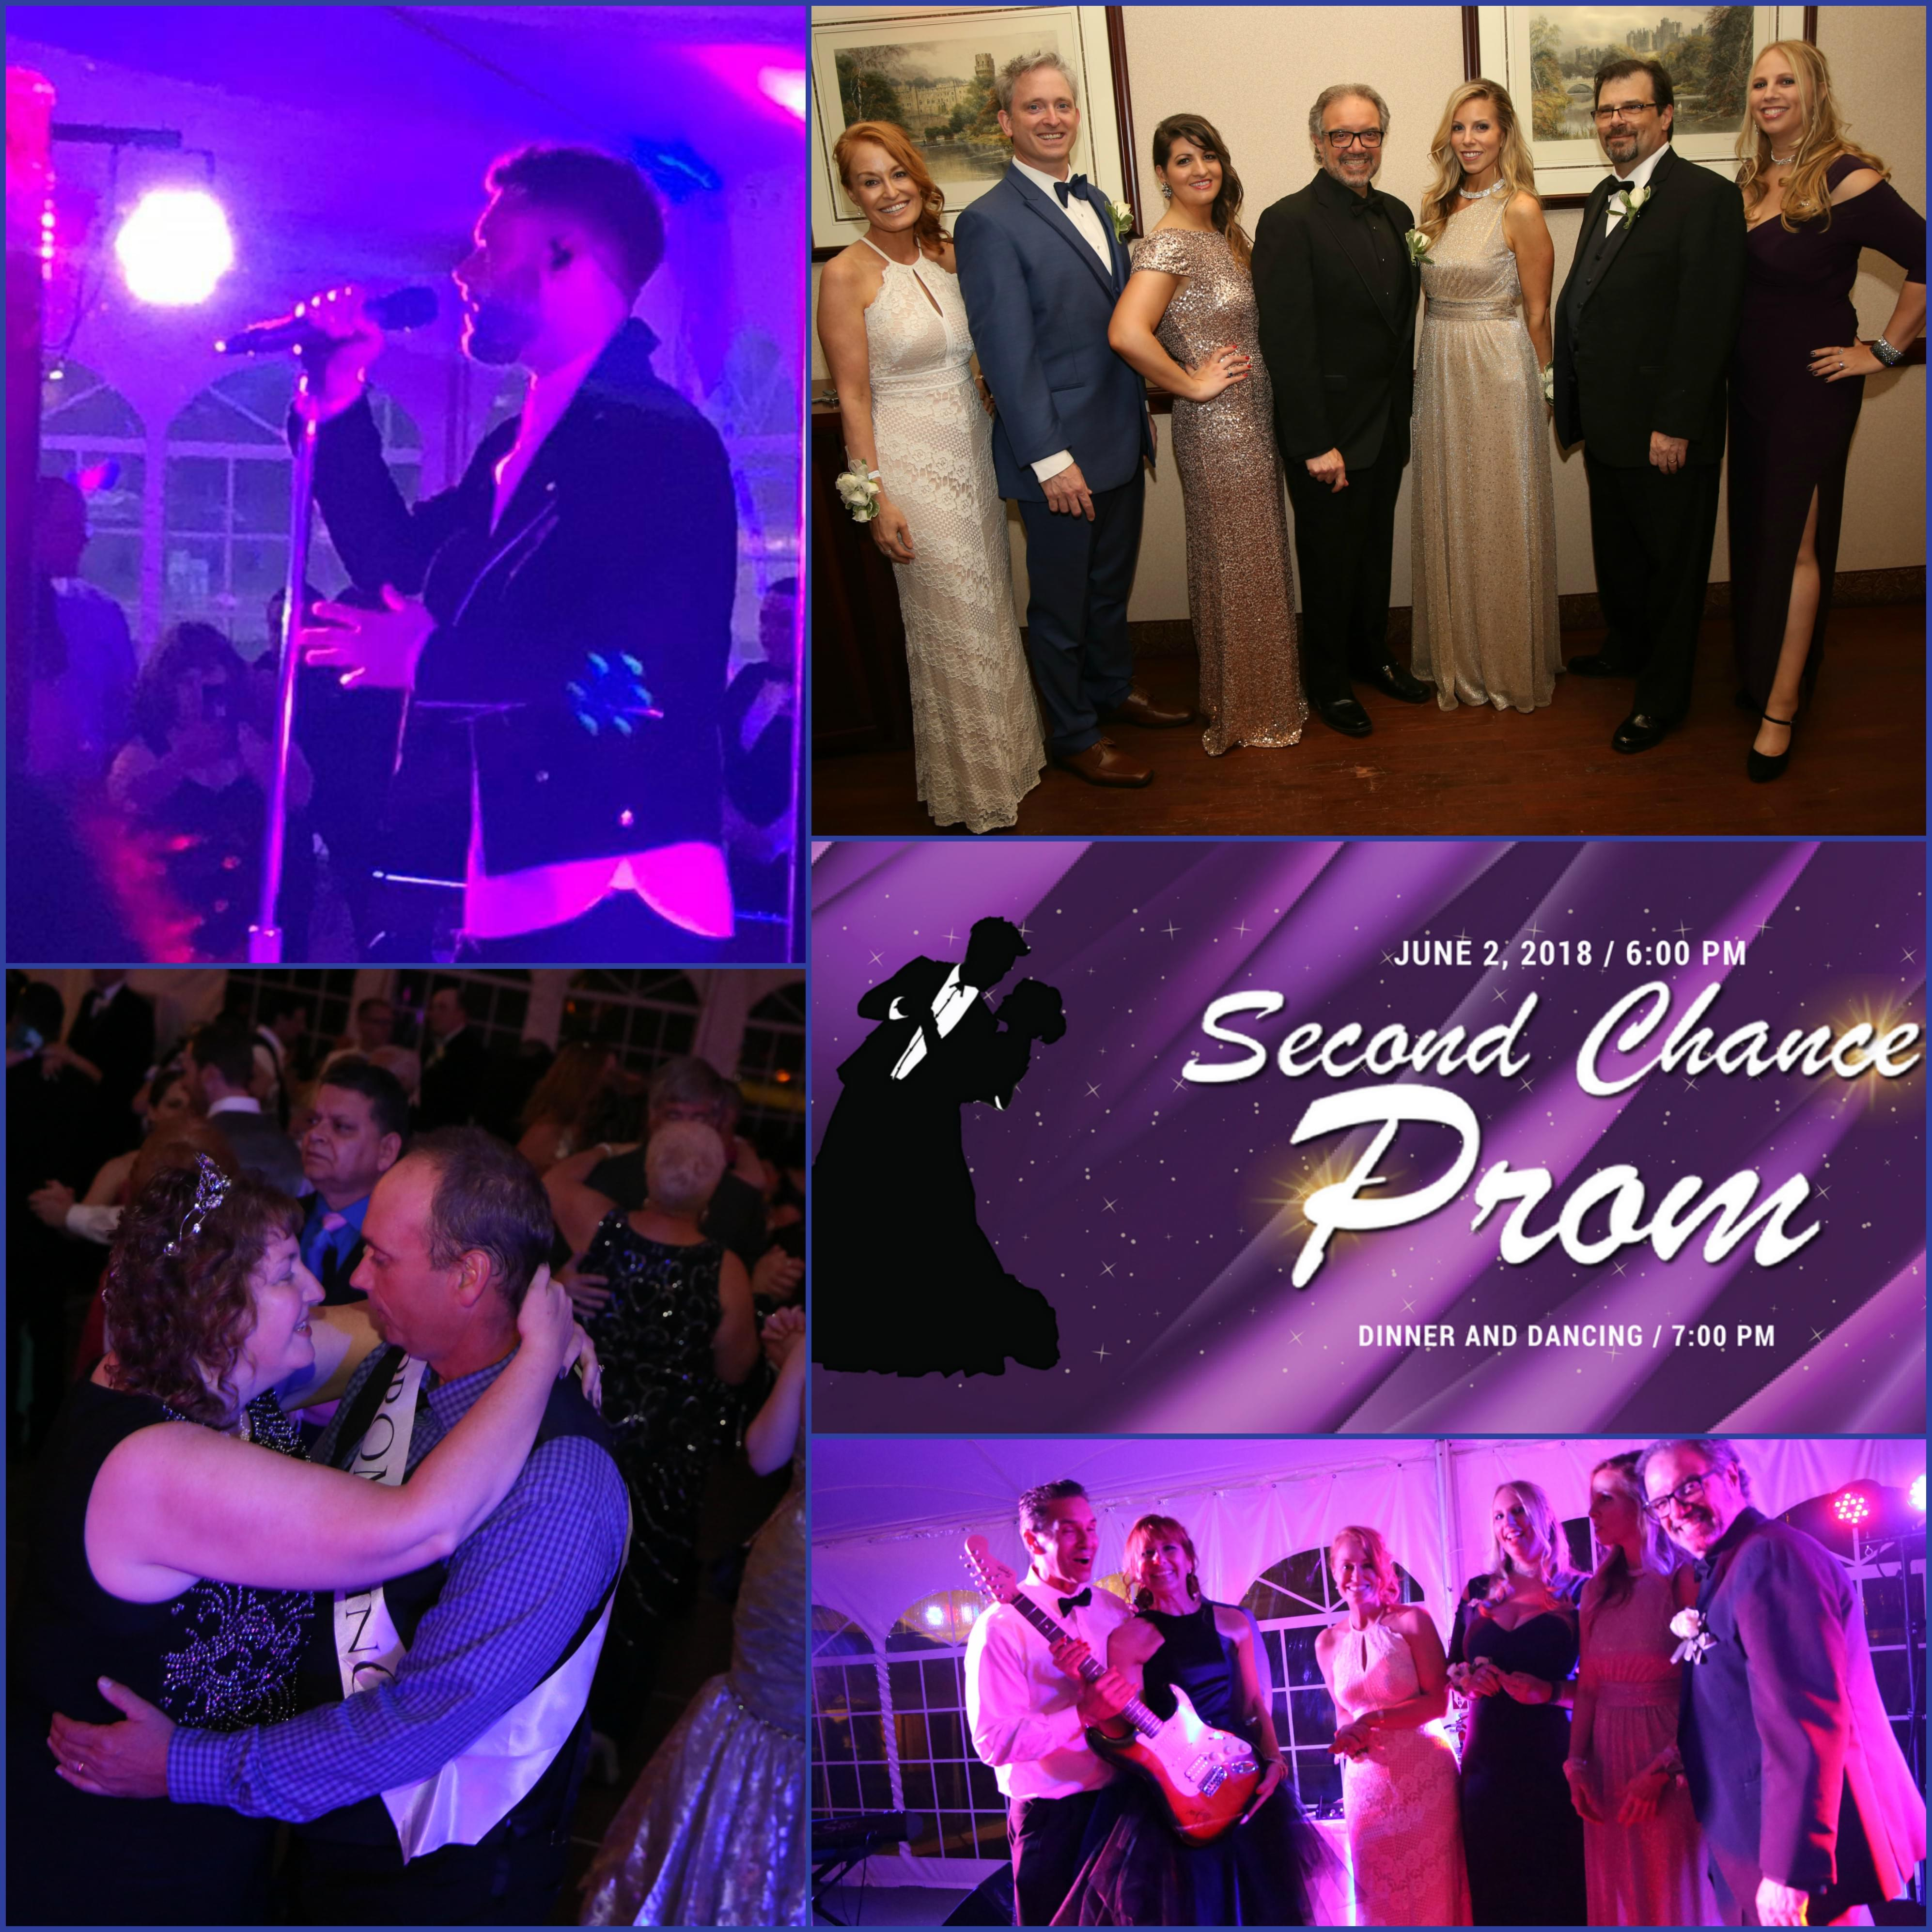 PICTURES & VIDEO >> Lite Rock 105's 2nd Chance Prom 6/2/18